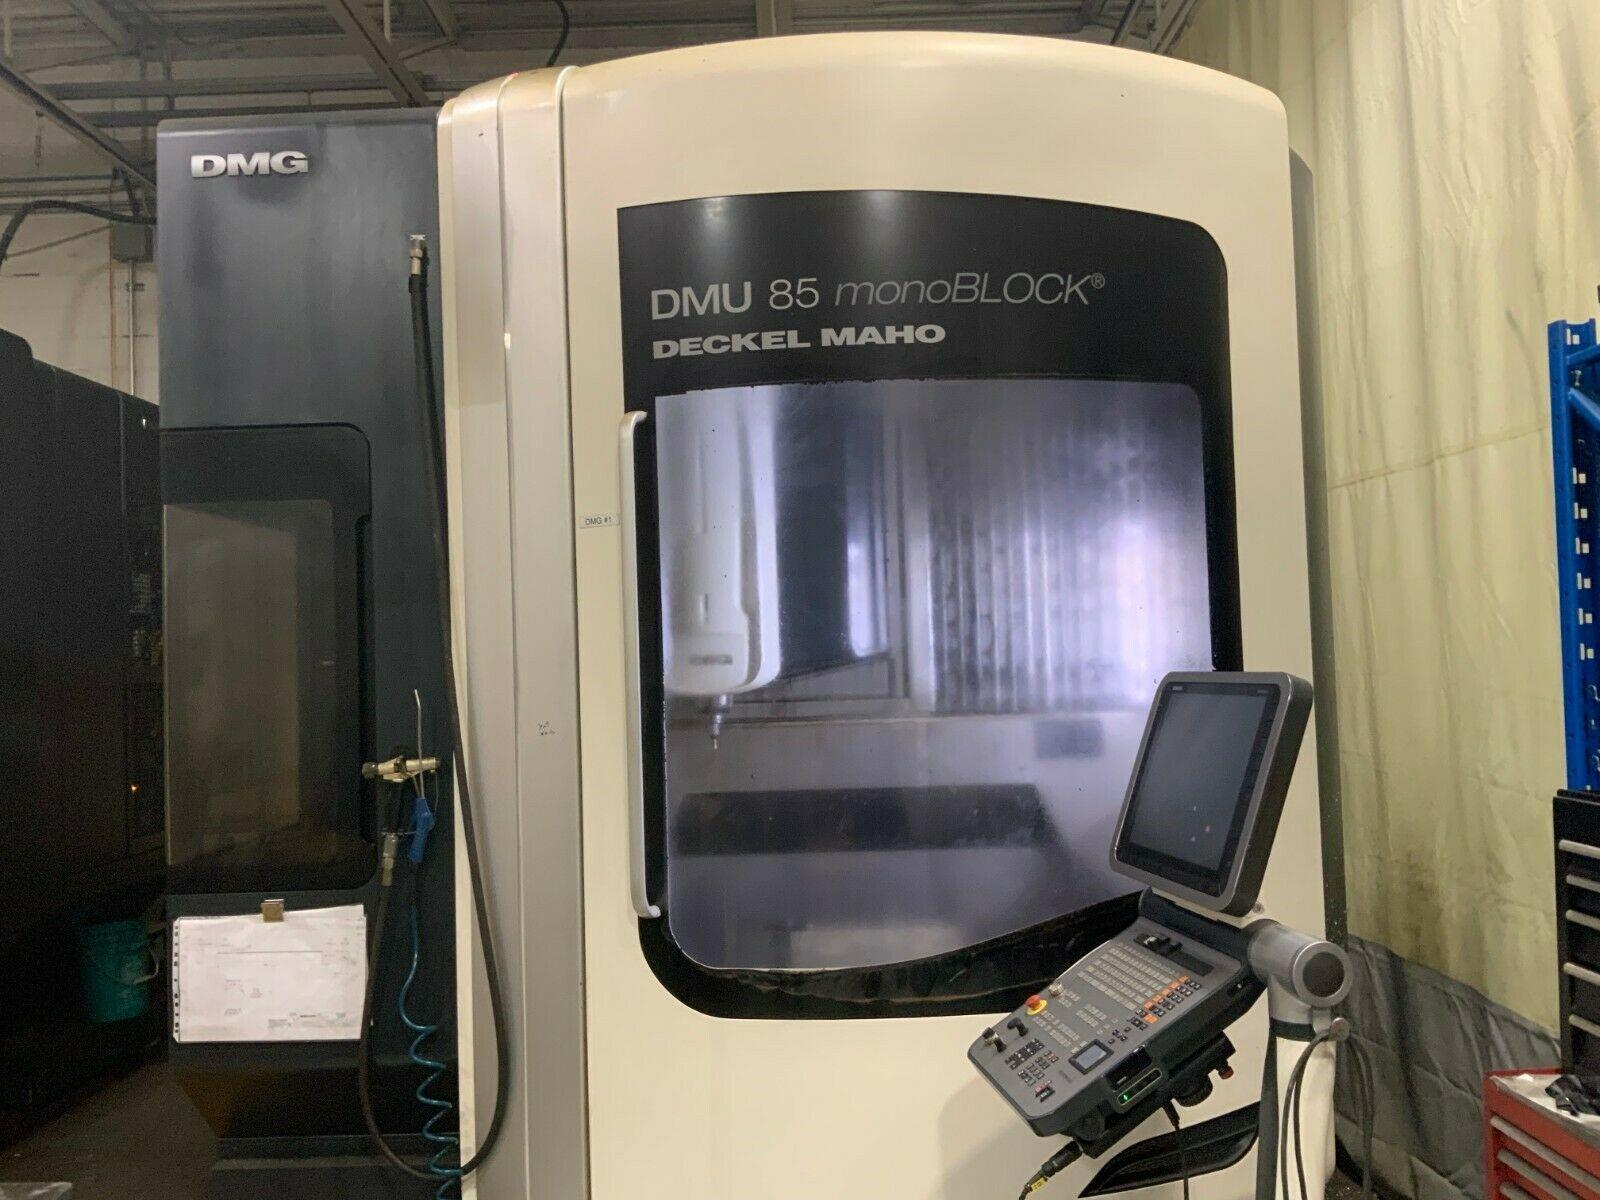 DMG DMU 85 monoBLOCK CNC Vertical Machining Center